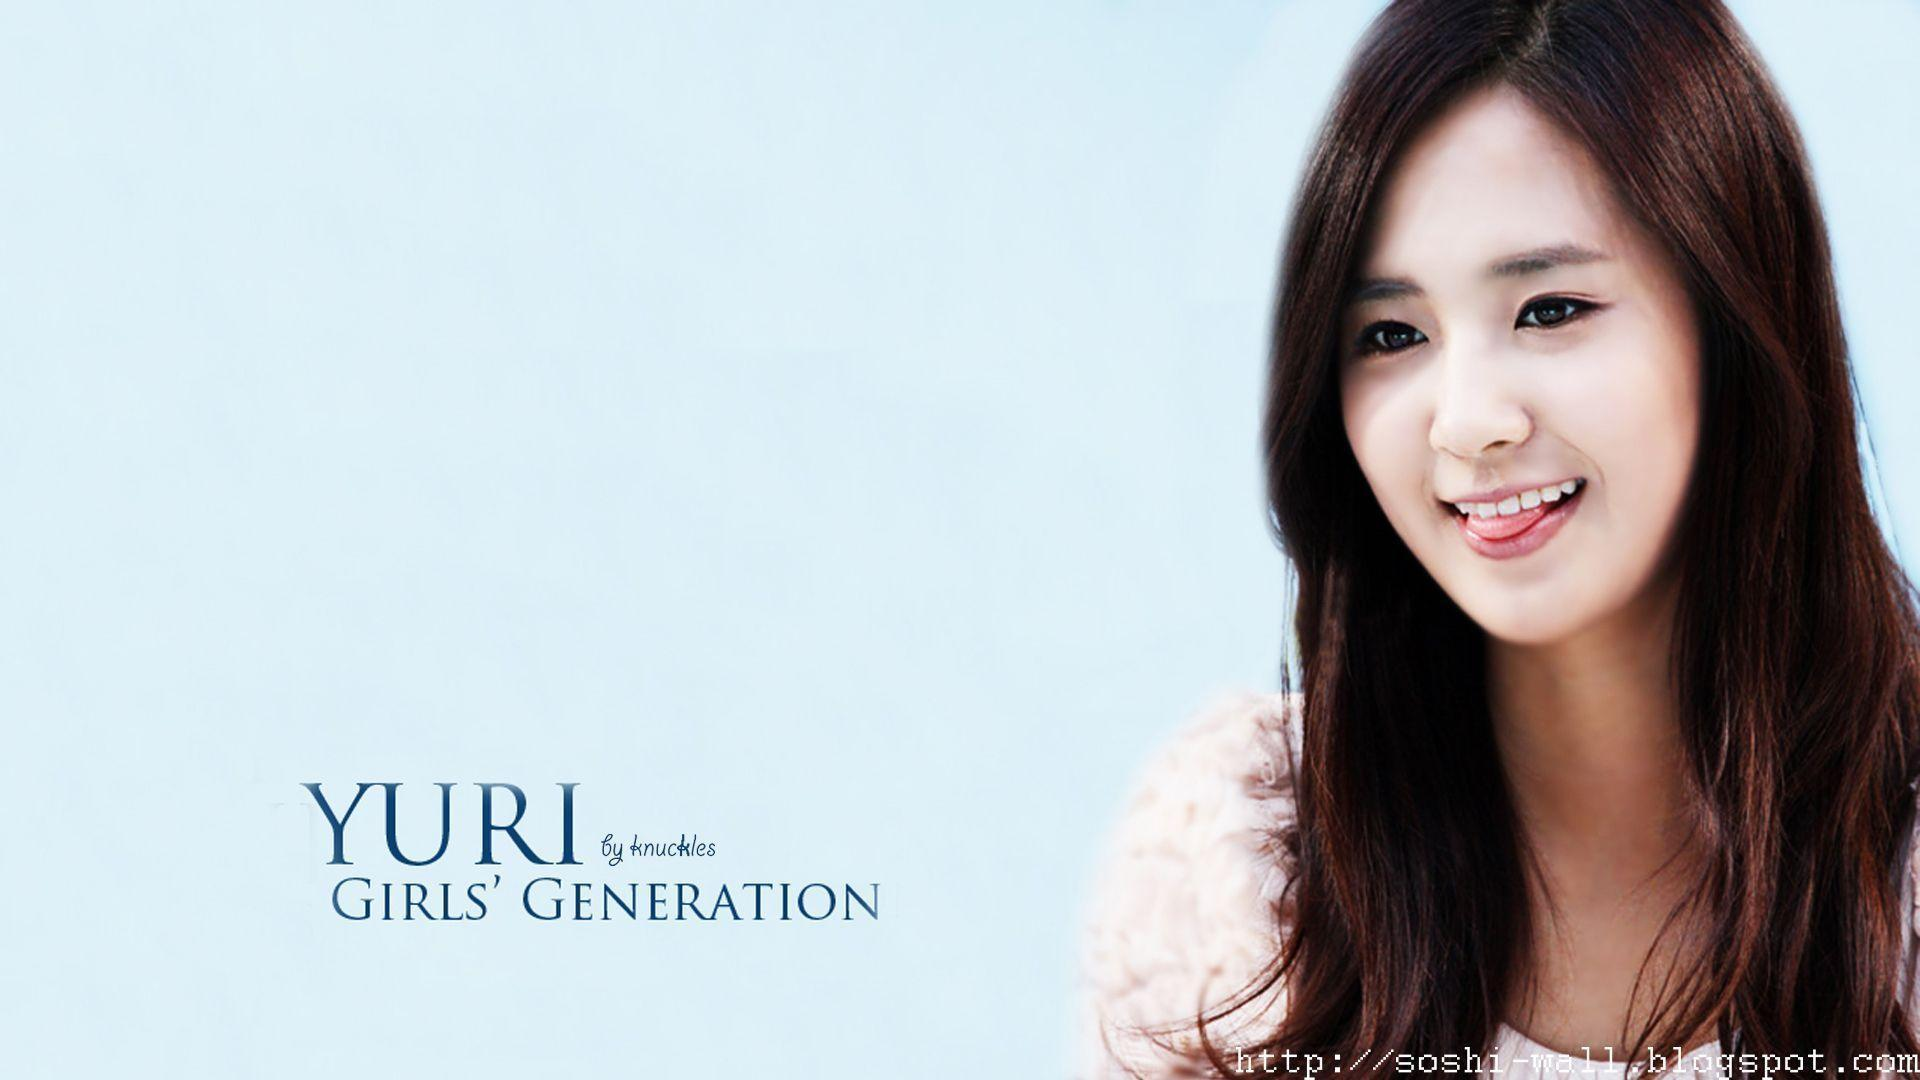 yuri snsd wallpaper 2013 - photo #22